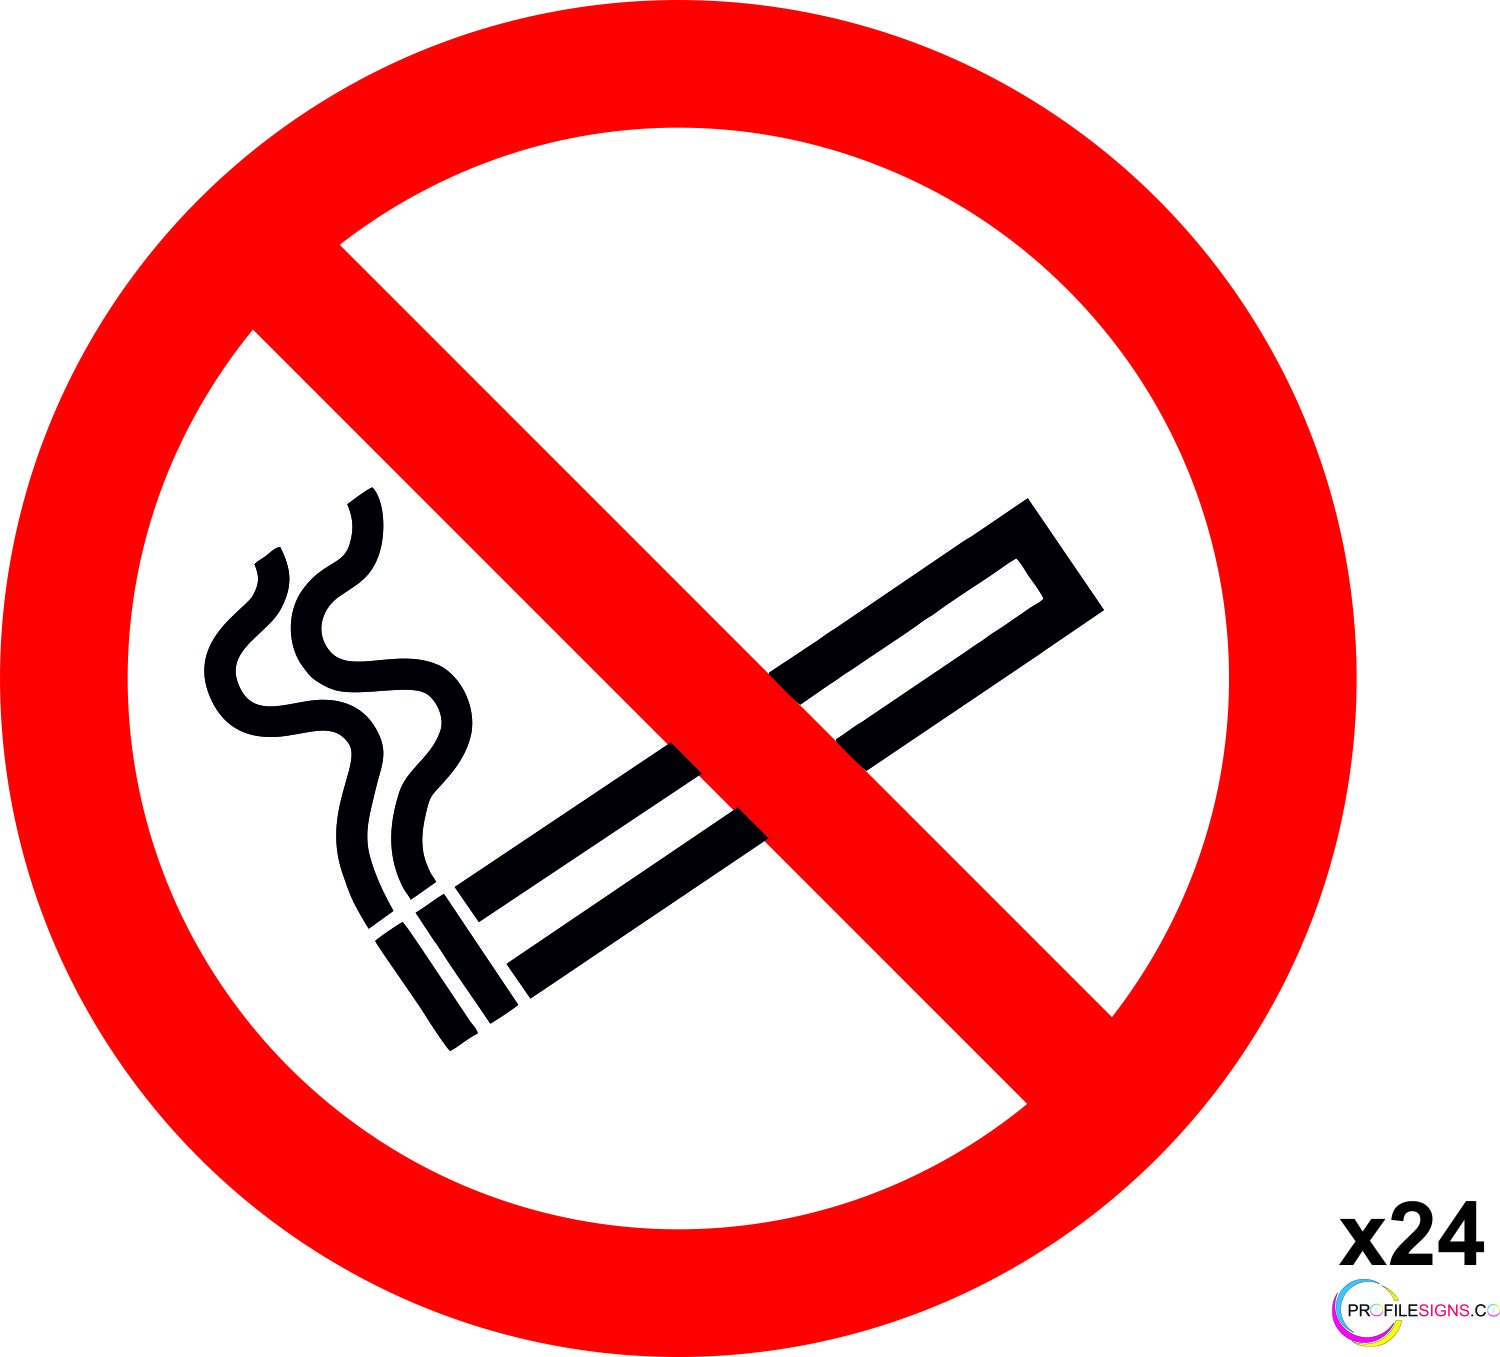 SELF ADHESIVE STICKER PACK OF 12 NO SMOKING SIGNS ISO COMPLIANT LABEL SCREEN PRINTED BY PROFILESIGNS 12